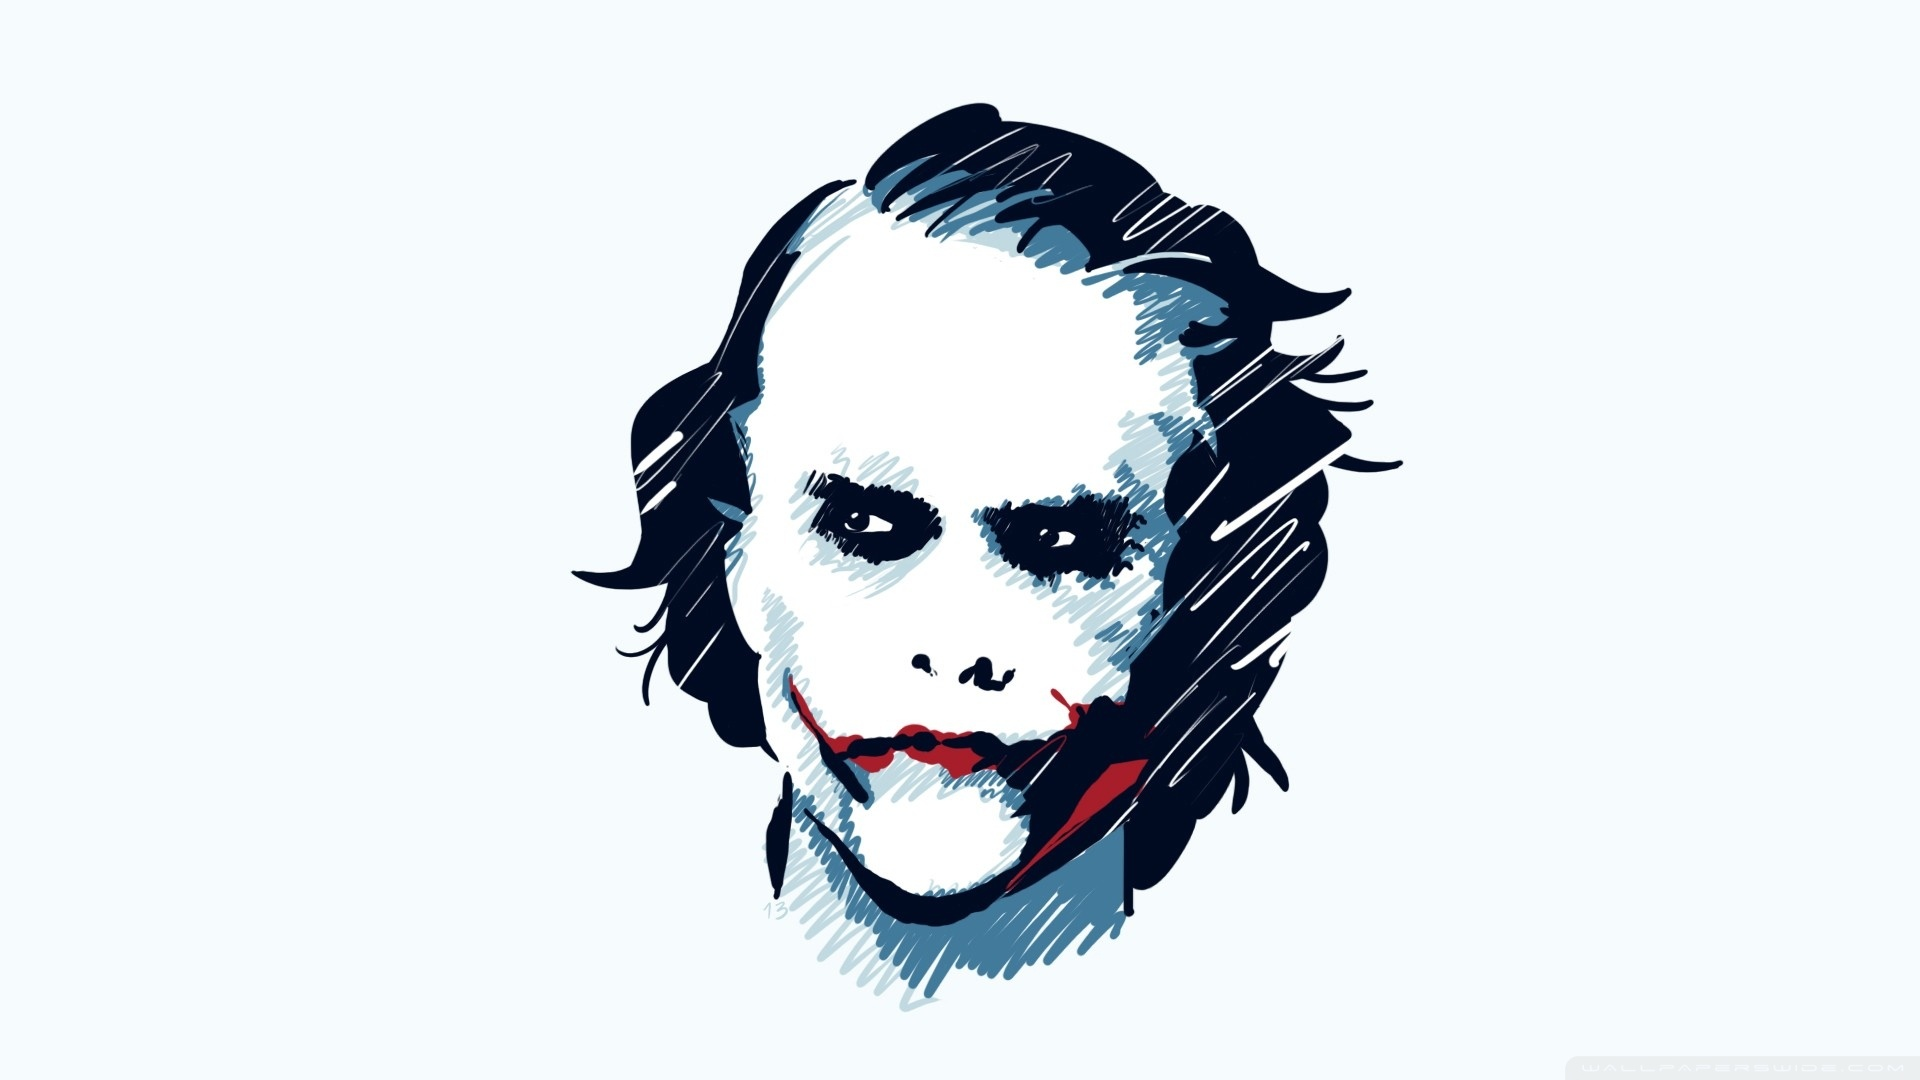 the_joker_4-wallpaper-1920x1080.jpg